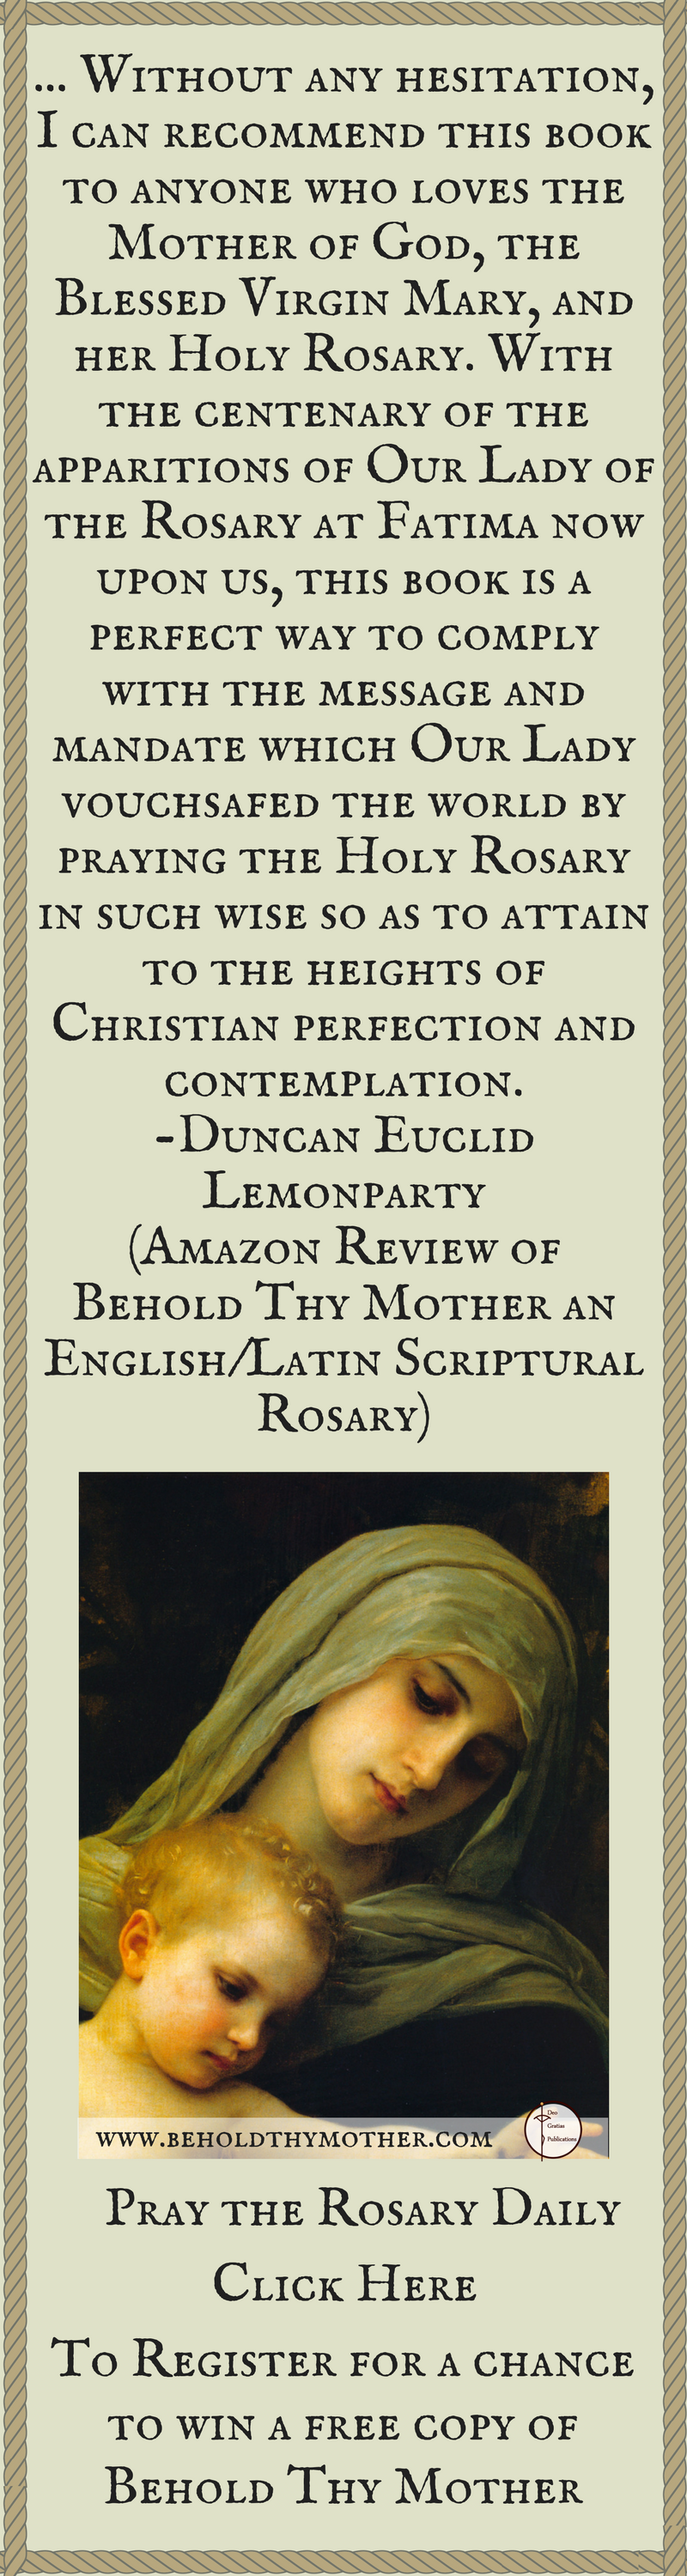 Register for a chance to win a free copy of behold thy mother an santo rosariolibro